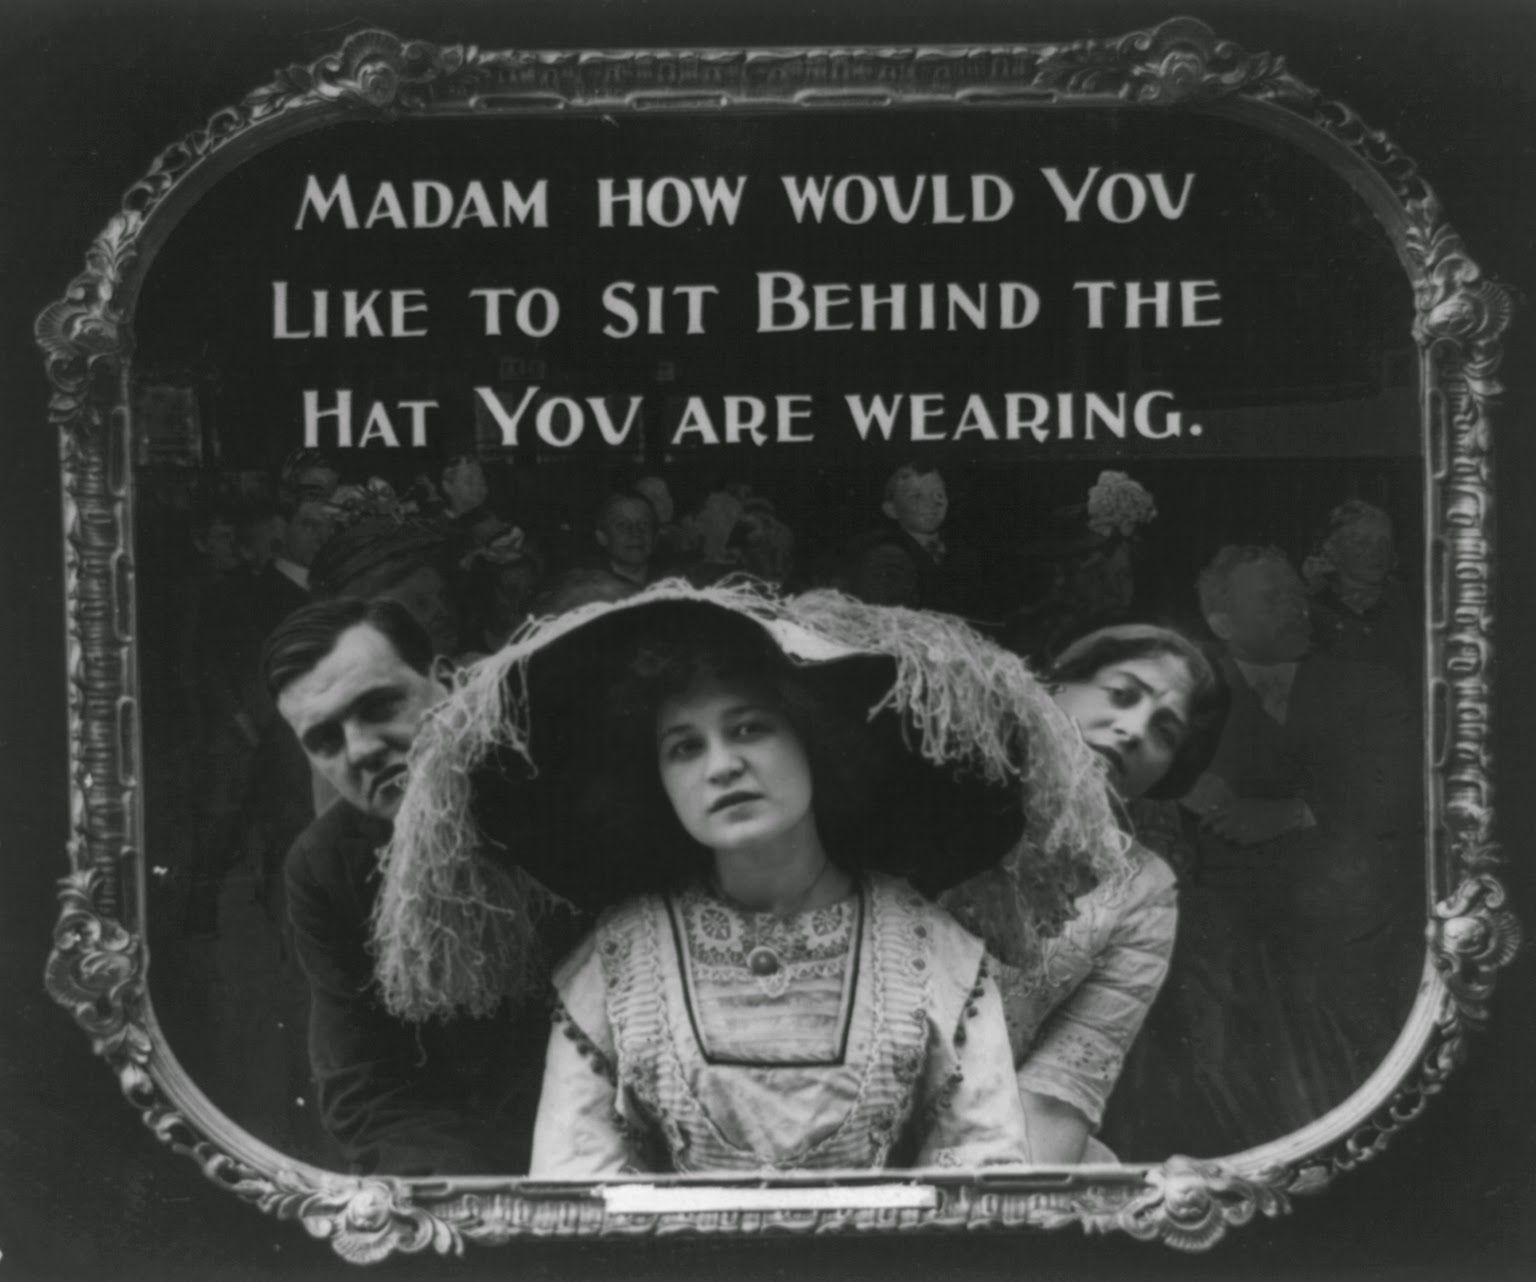 movie theatre etiquette poster from 1912 madam how would you like